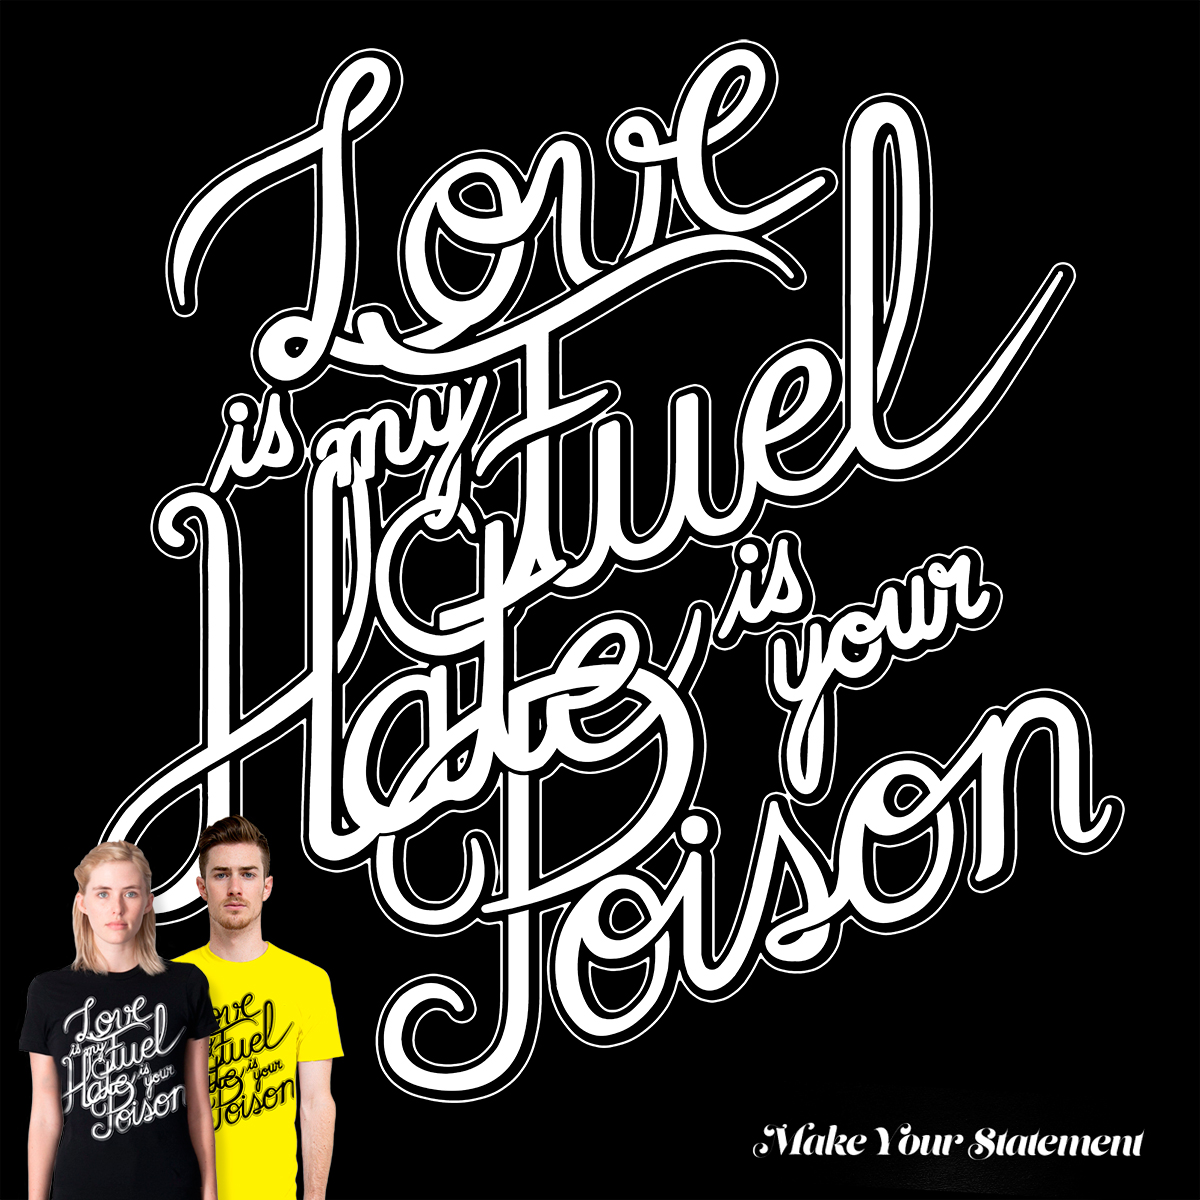 Love & Hate, a cool t-shirt design